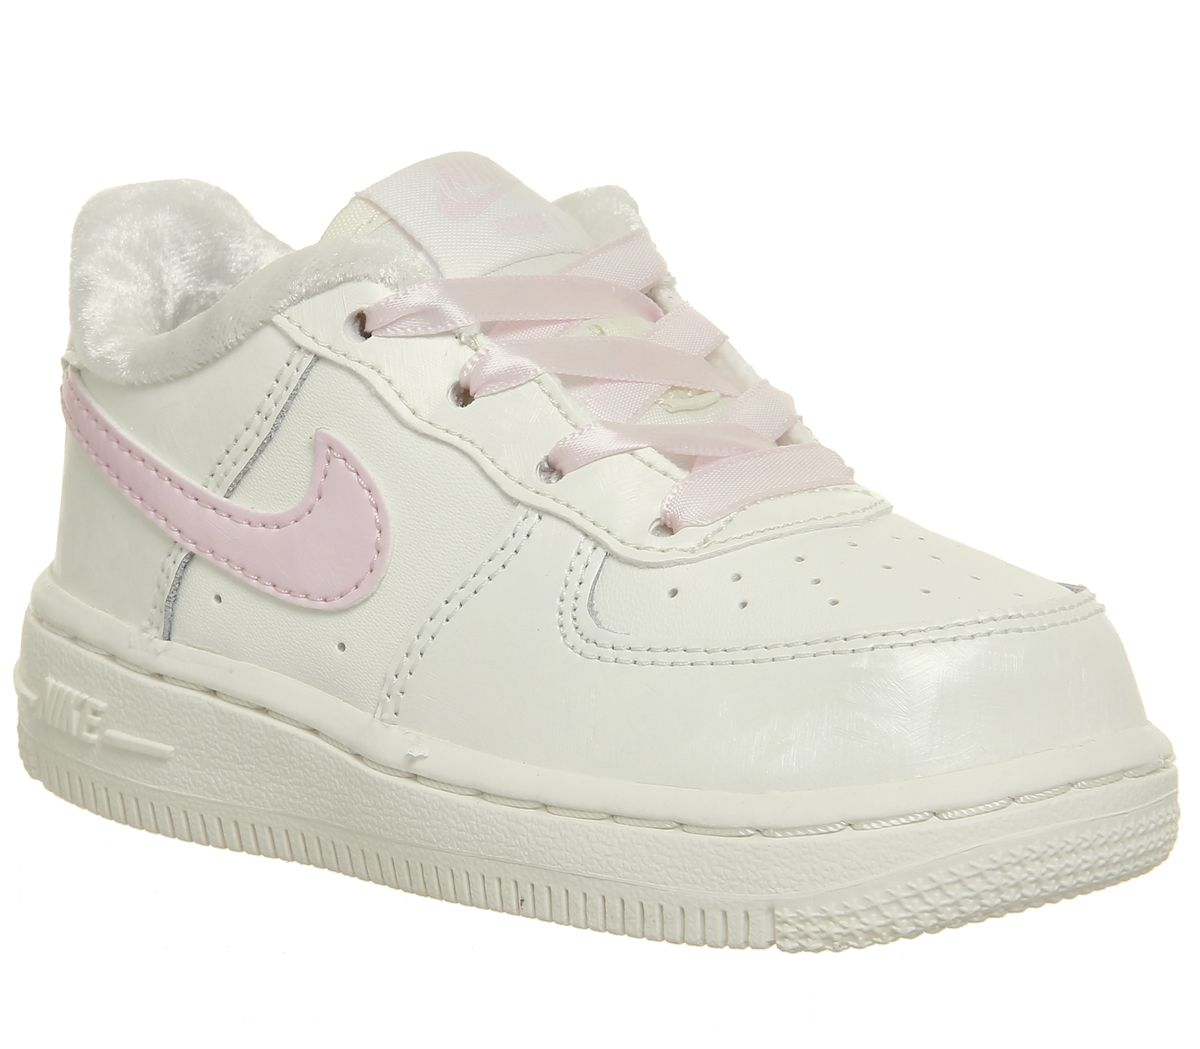 info for c4c8d 0999a Nike Air Force 1 Infant White Artic Pink - Unisex